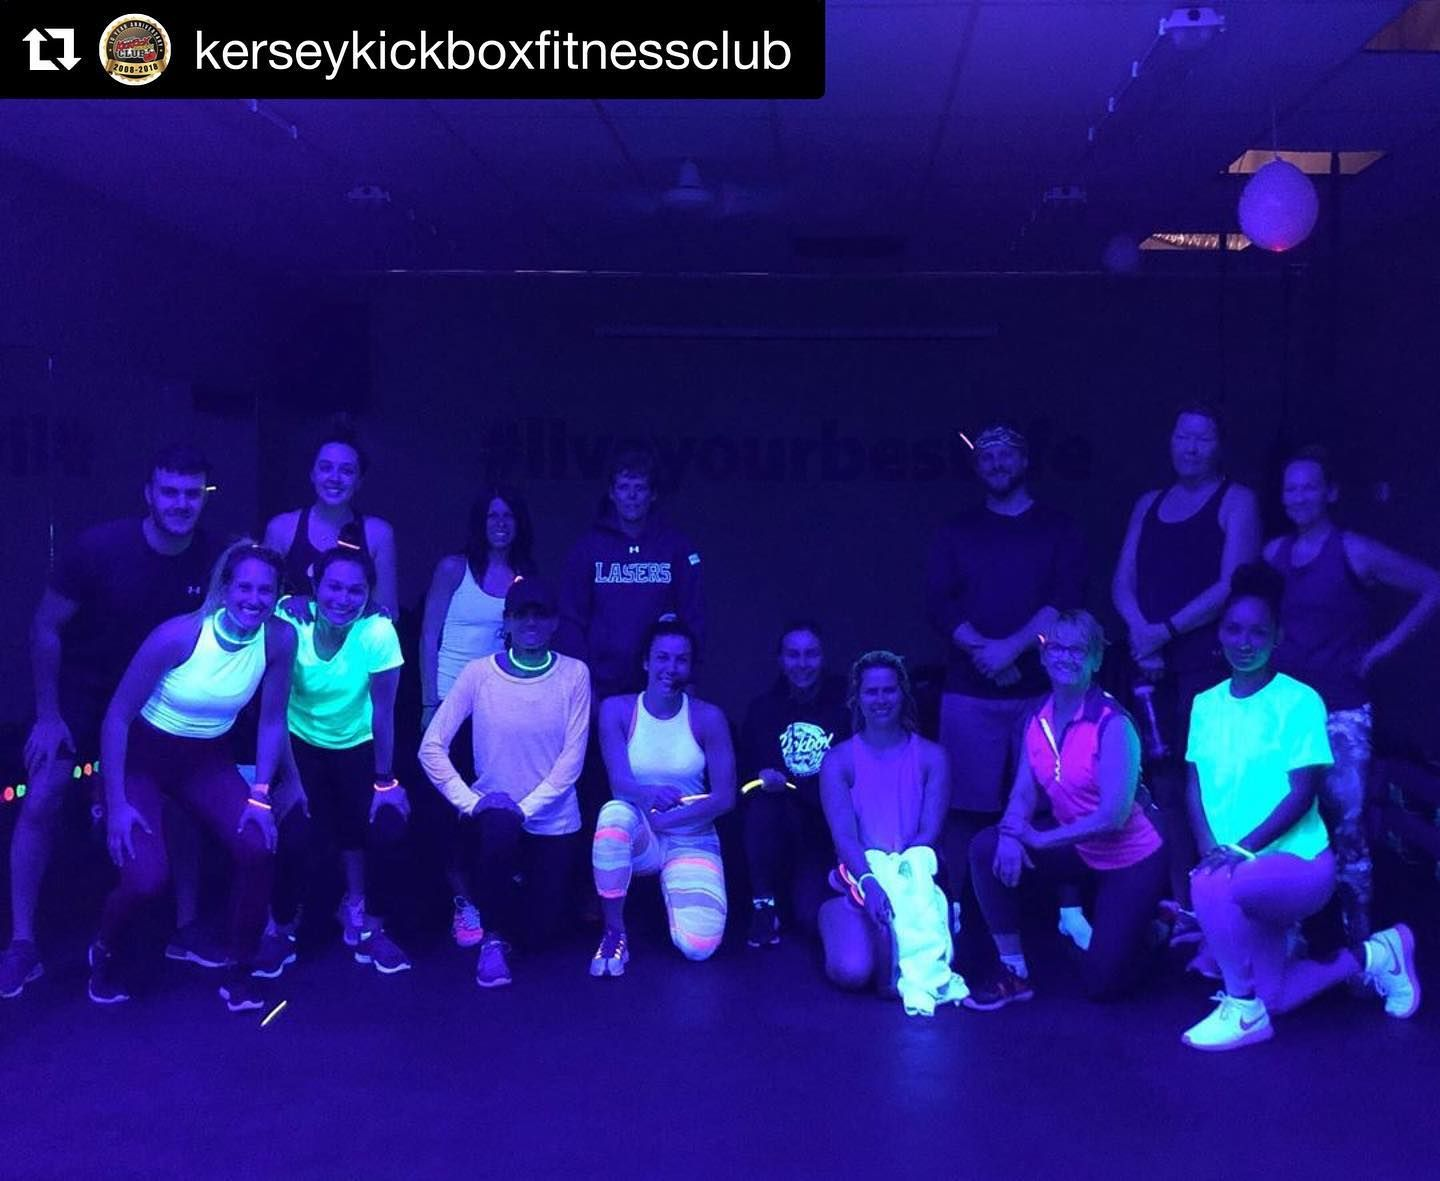 Kersey Kickbox Fitness Club S Glow Party Over The Weekend Was Lit Literally Complete With A Dj Spinning Kersey S Glow Party Weekend Is Over Party Over